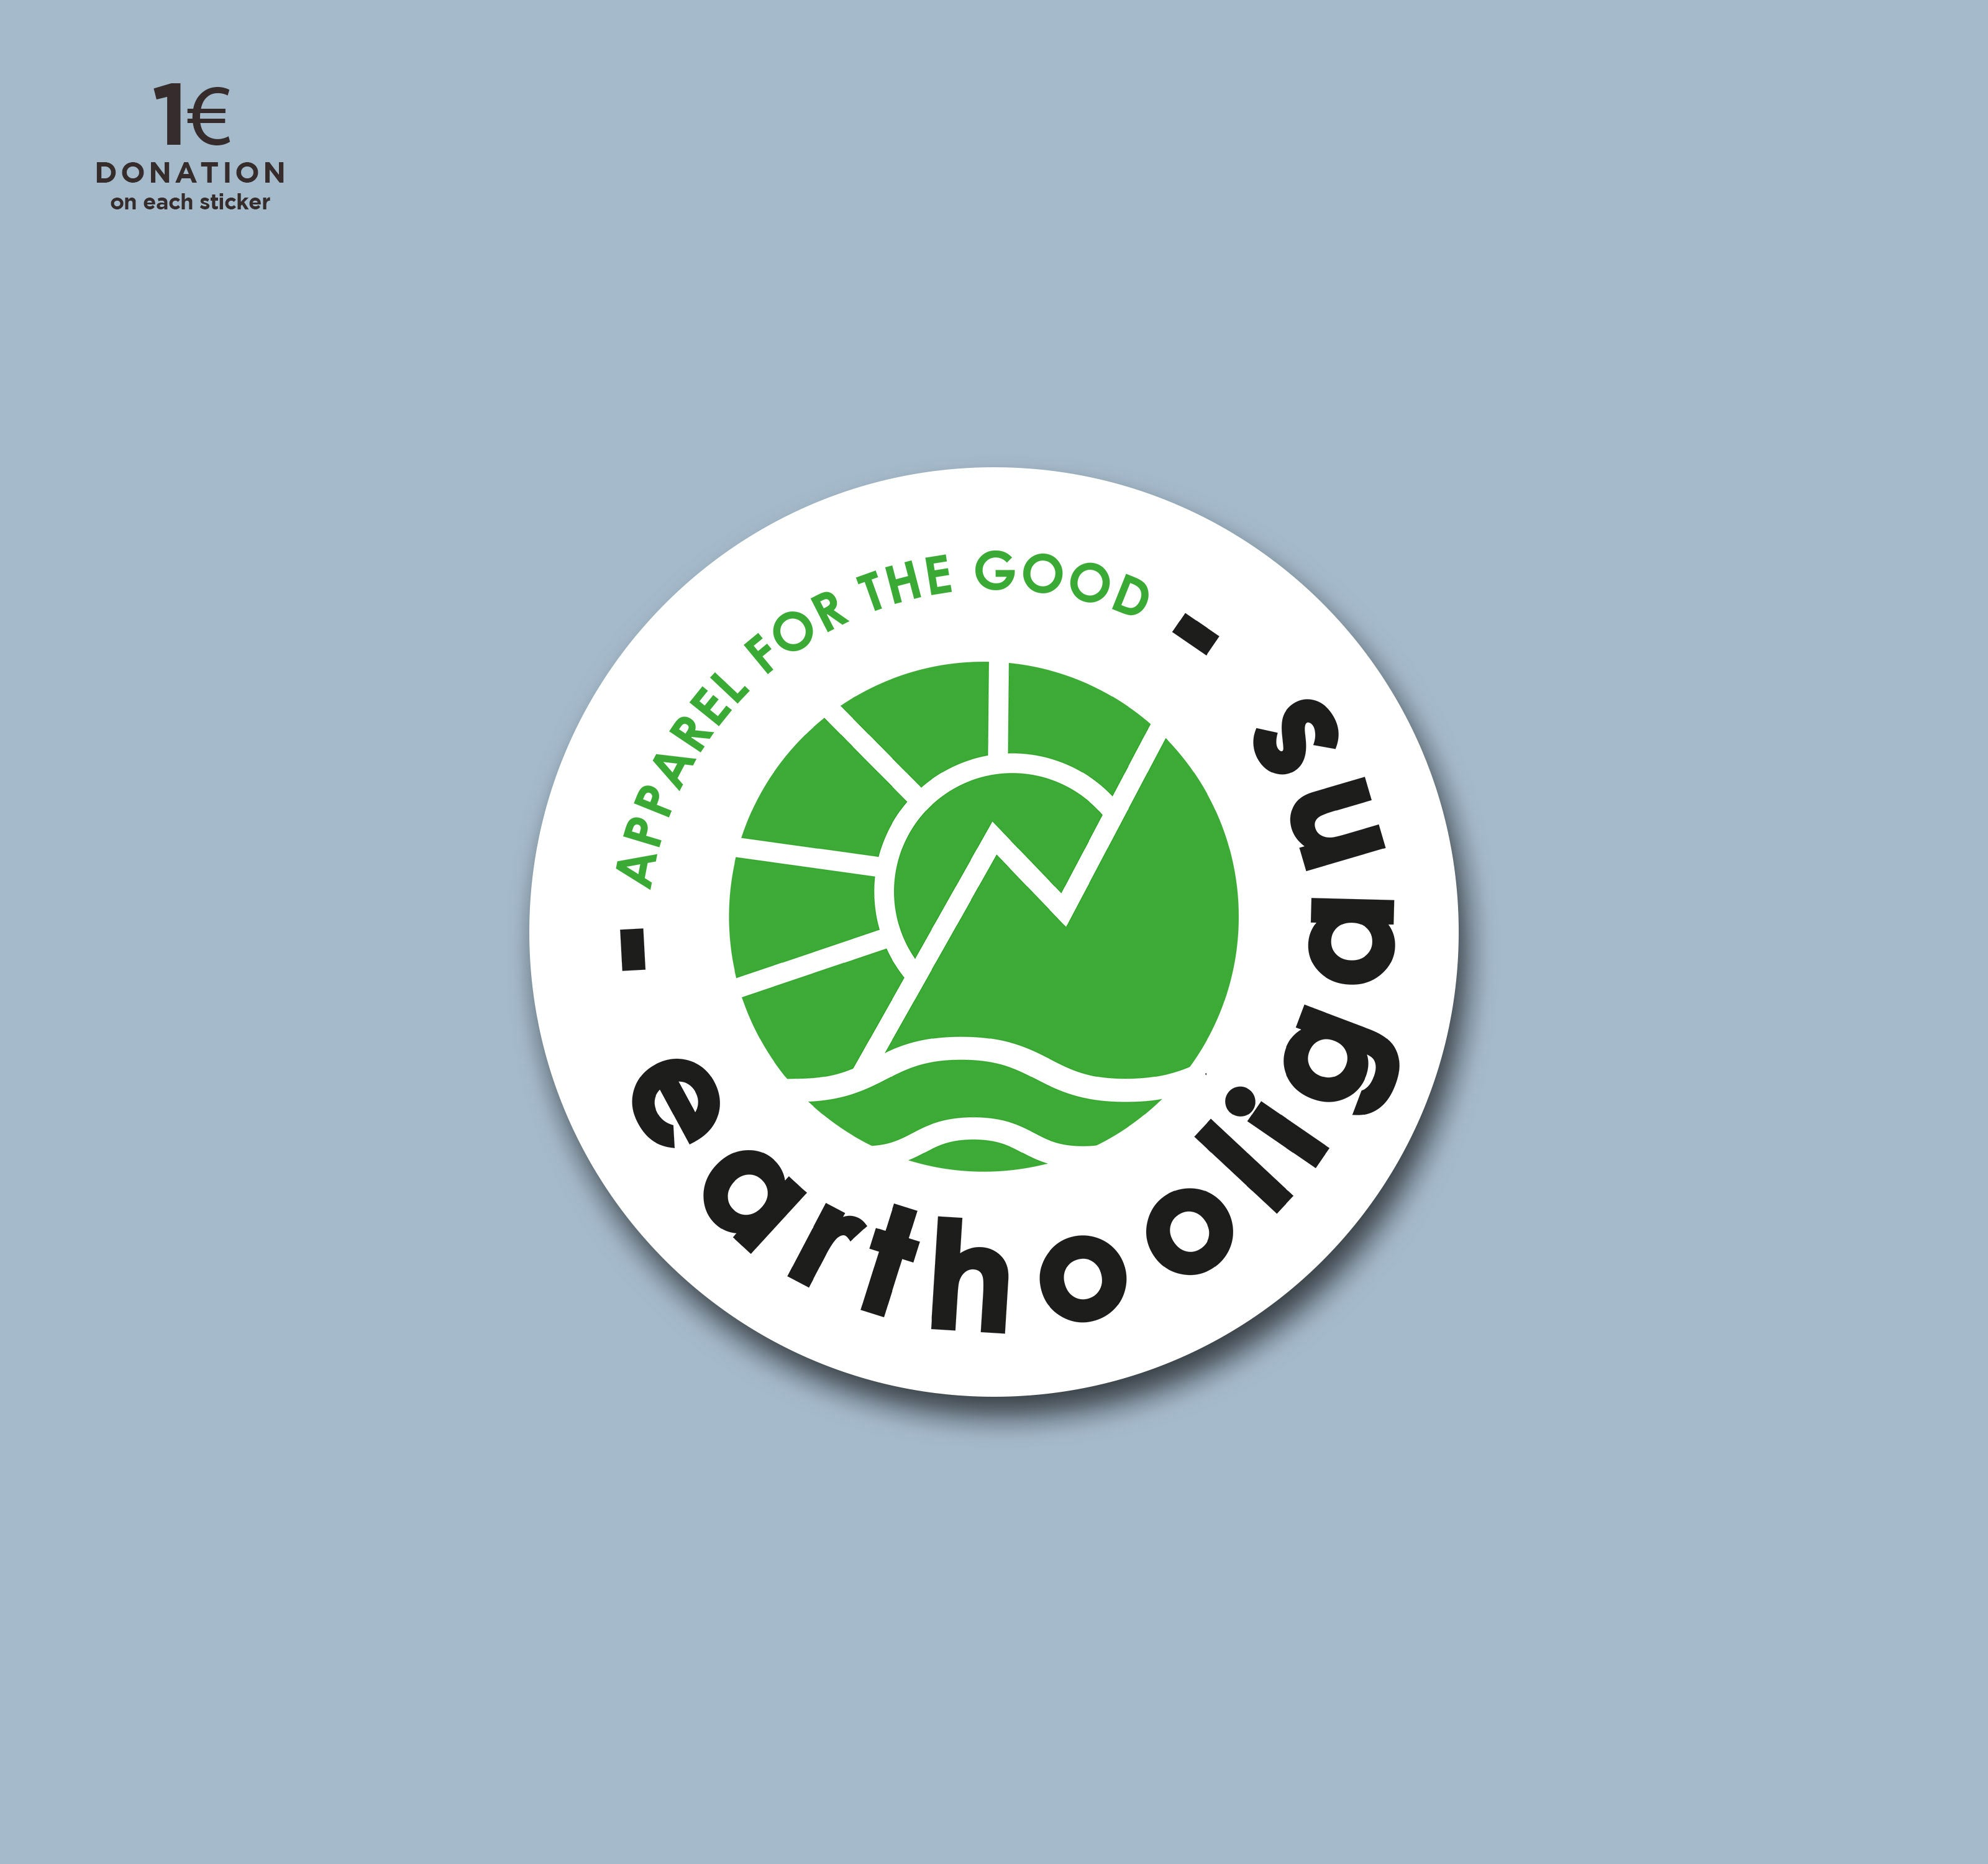 Sticker de marque eco friendly pour les associations